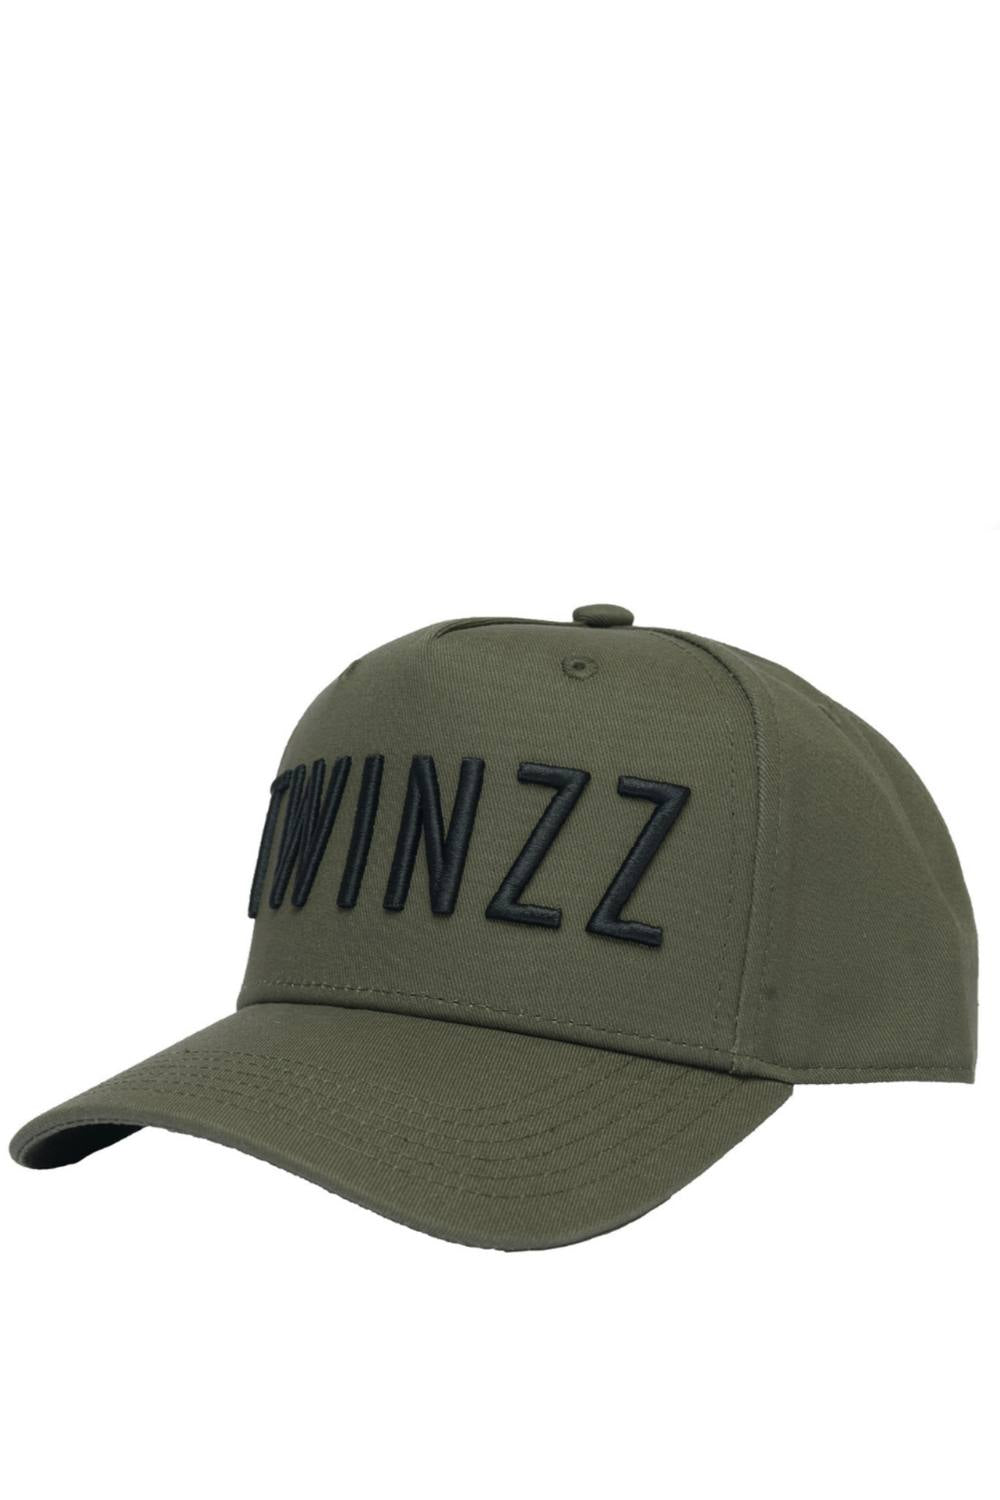 Twinzz 3D Full Trucker Cap - Khaki/Black